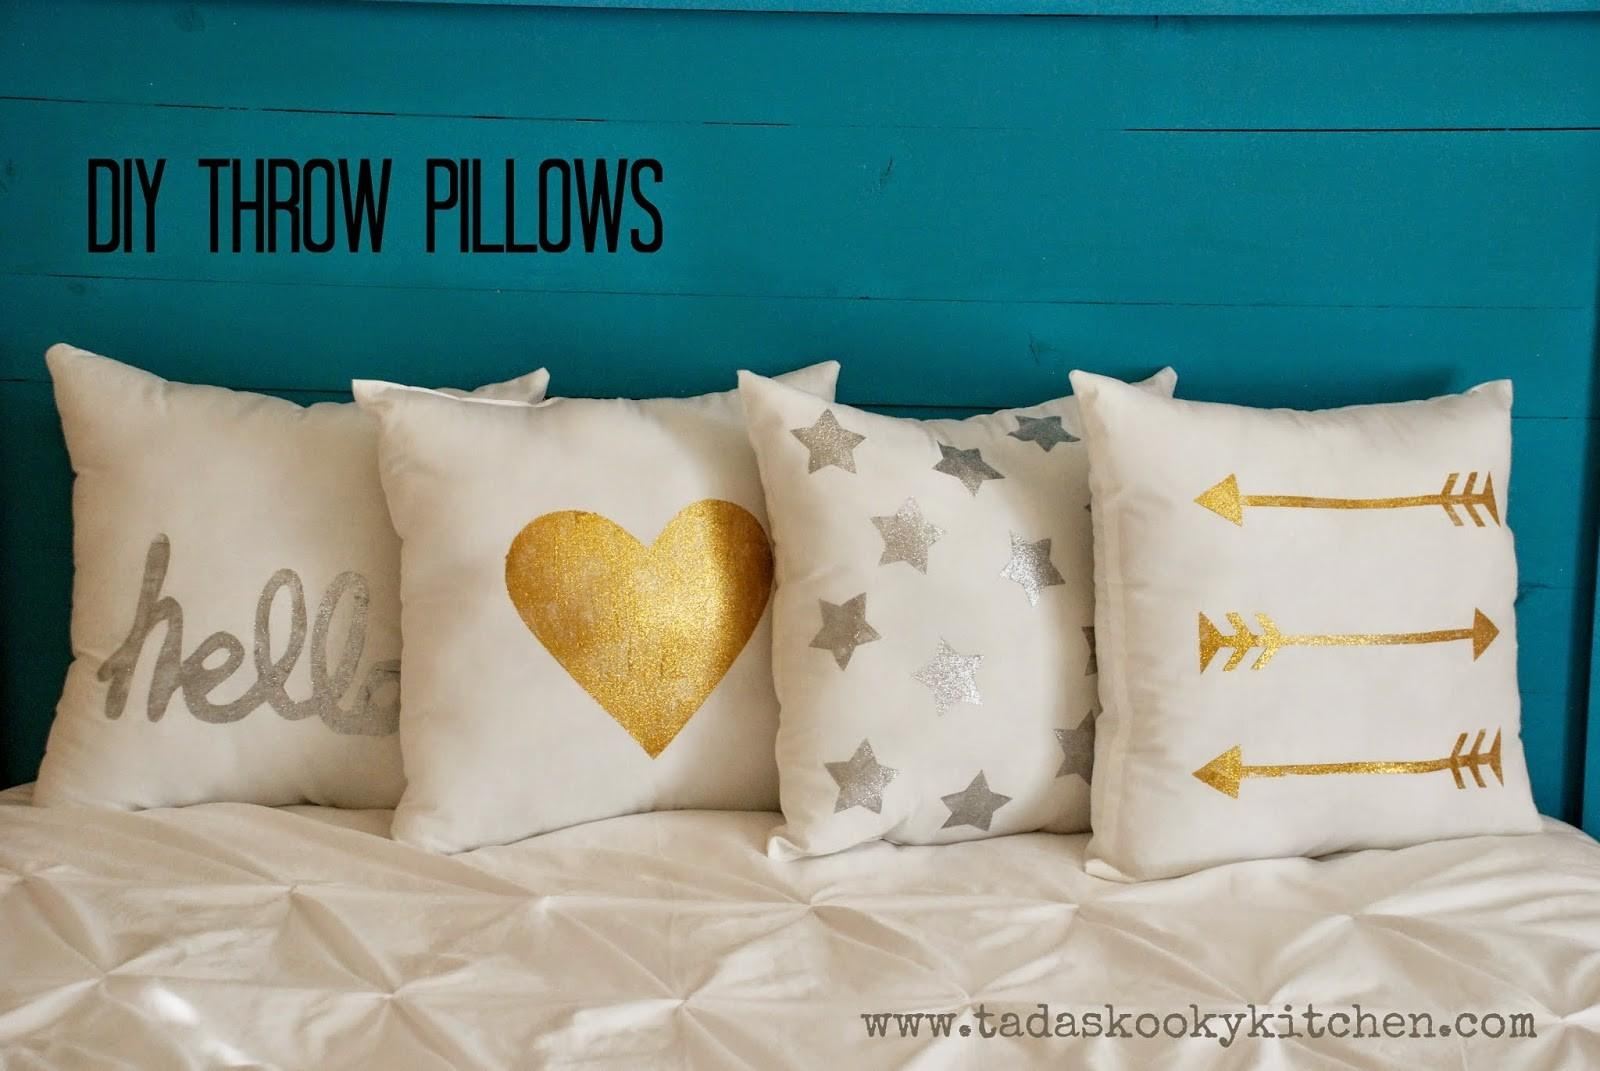 Tada Kooky Kitchen Diy Throw Pillows